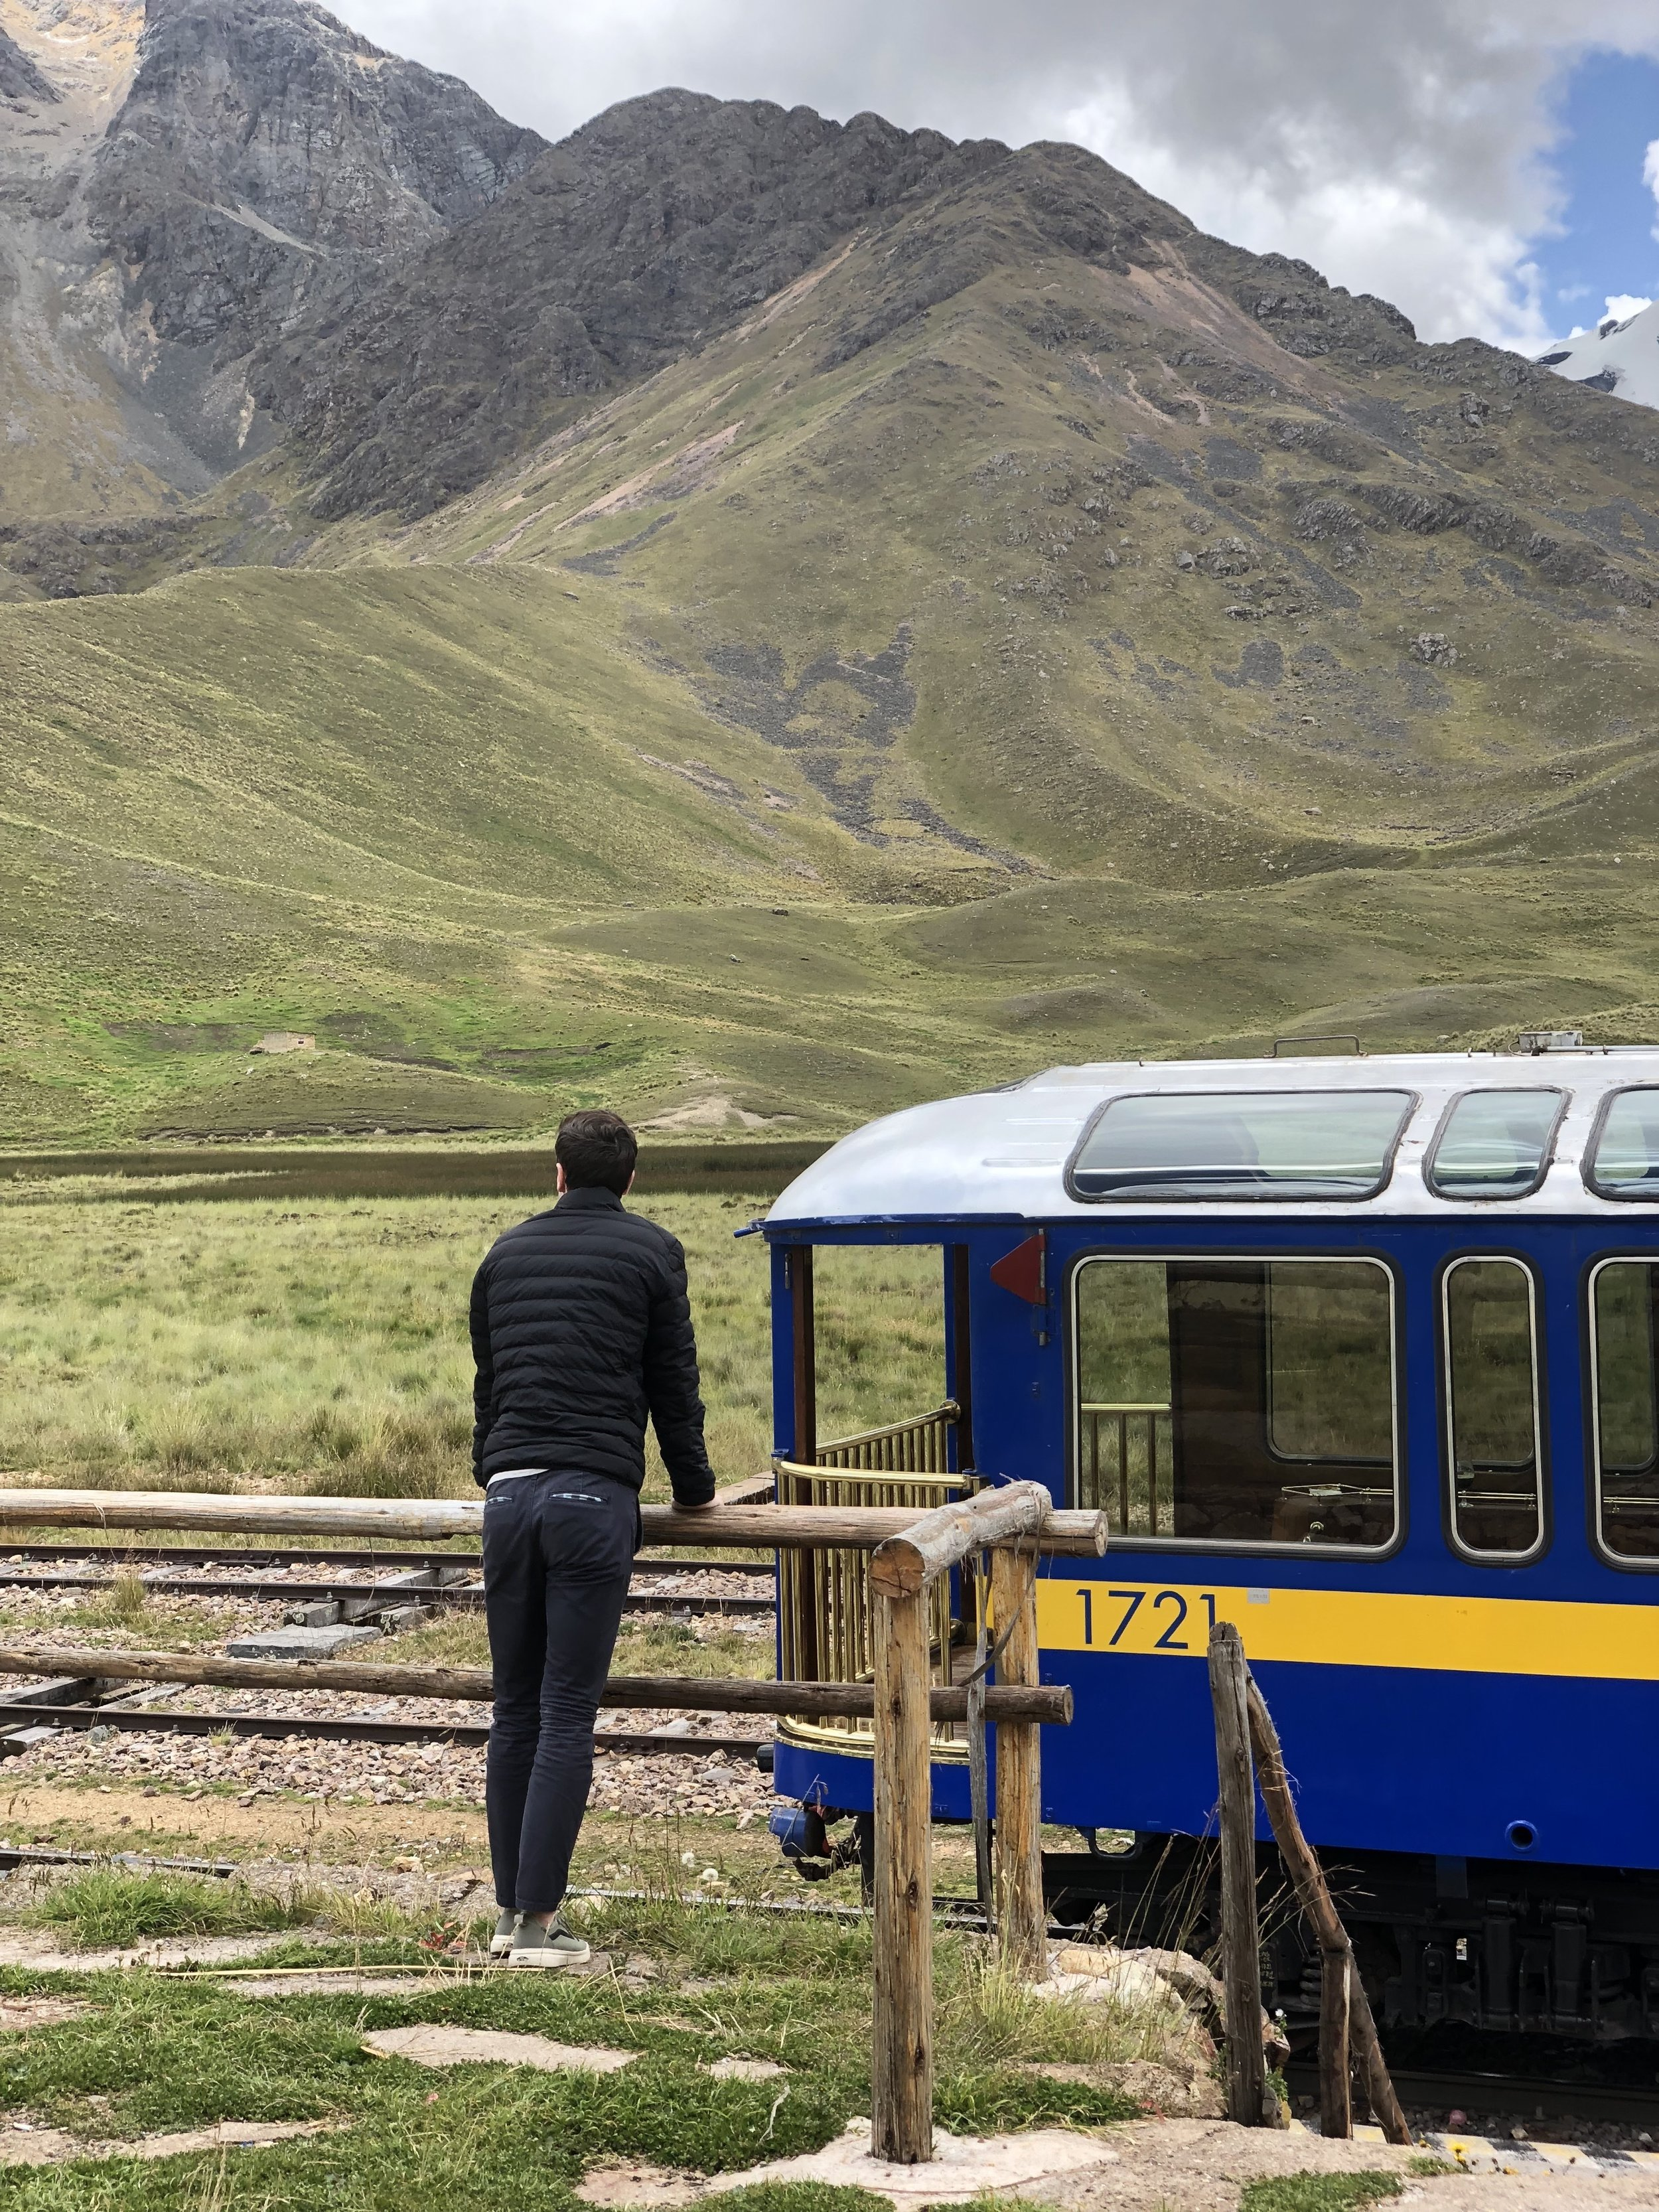 Perurail-puno-cusco-peru-train-southamerica-views